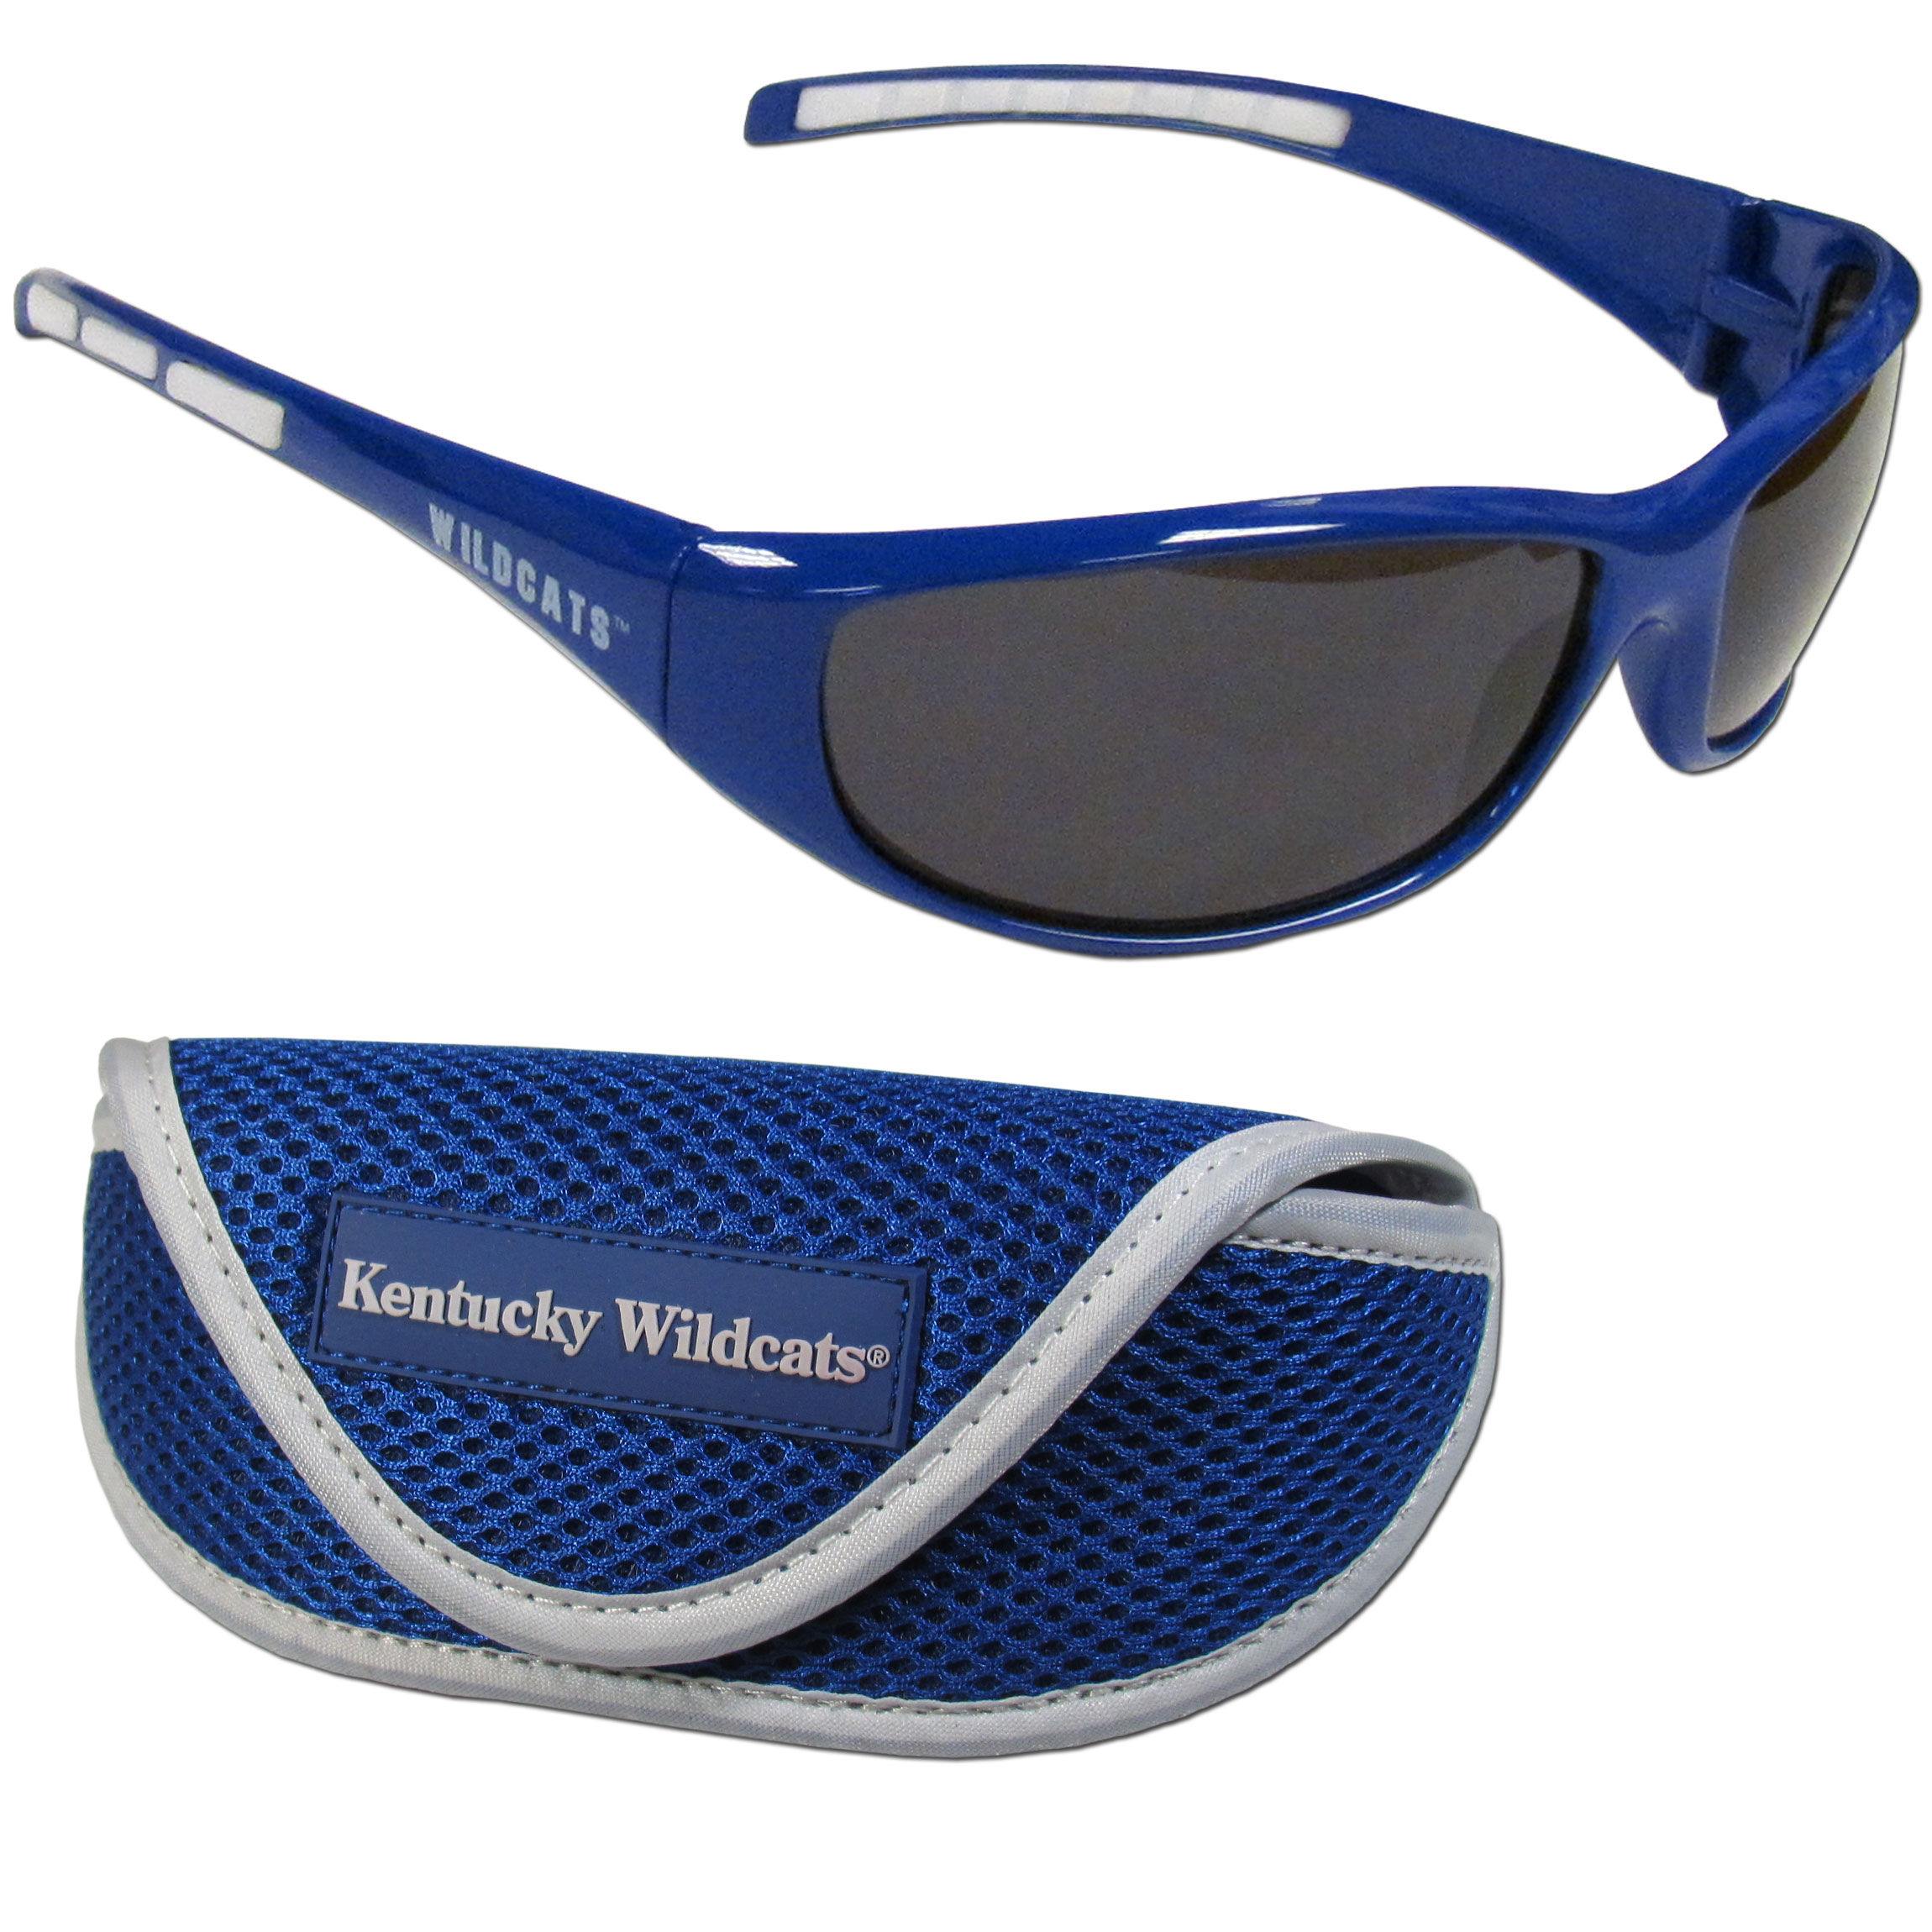 Kentucky Wildcats Wrap Sunglass and Case Set - This great set includes a high quality pair of Kentucky Wildcats wrap sunglasses and soft sport carrying case.